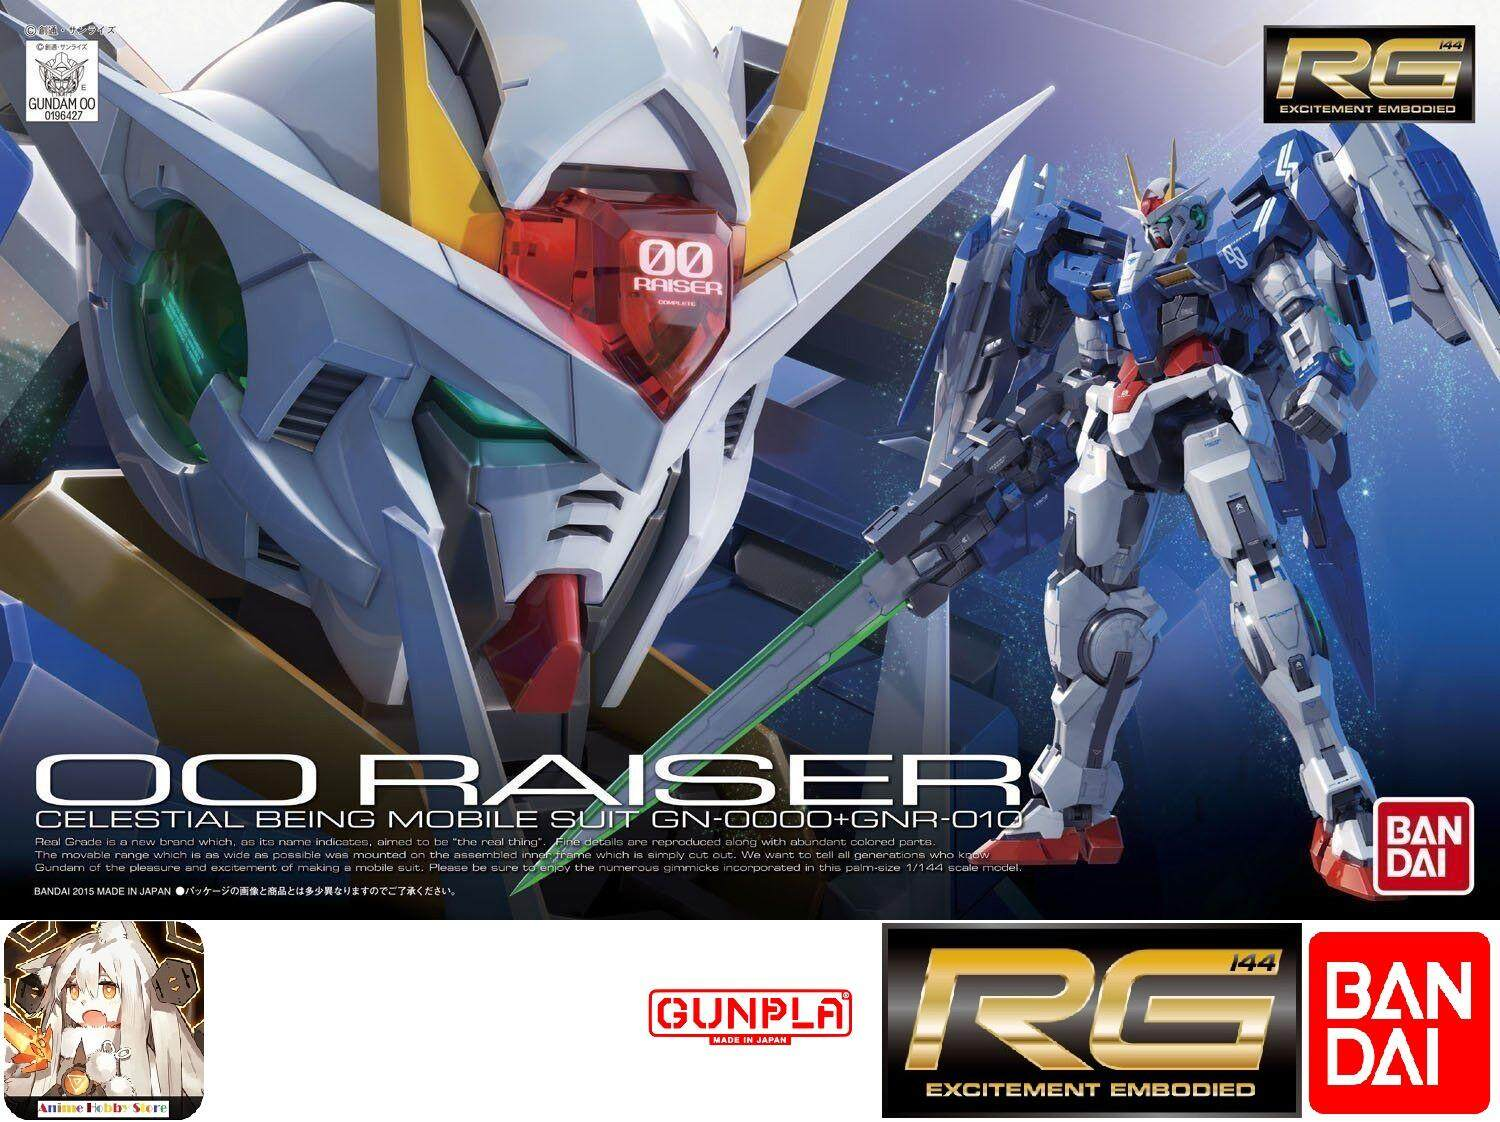 Bandai Action Figures Collectibles Price In Malaysia Best Original Model Kits Sd V Gundam Rg 18 Oo 00 Raiser Mobile Suit Assembly Kit Gunpla 00r 1